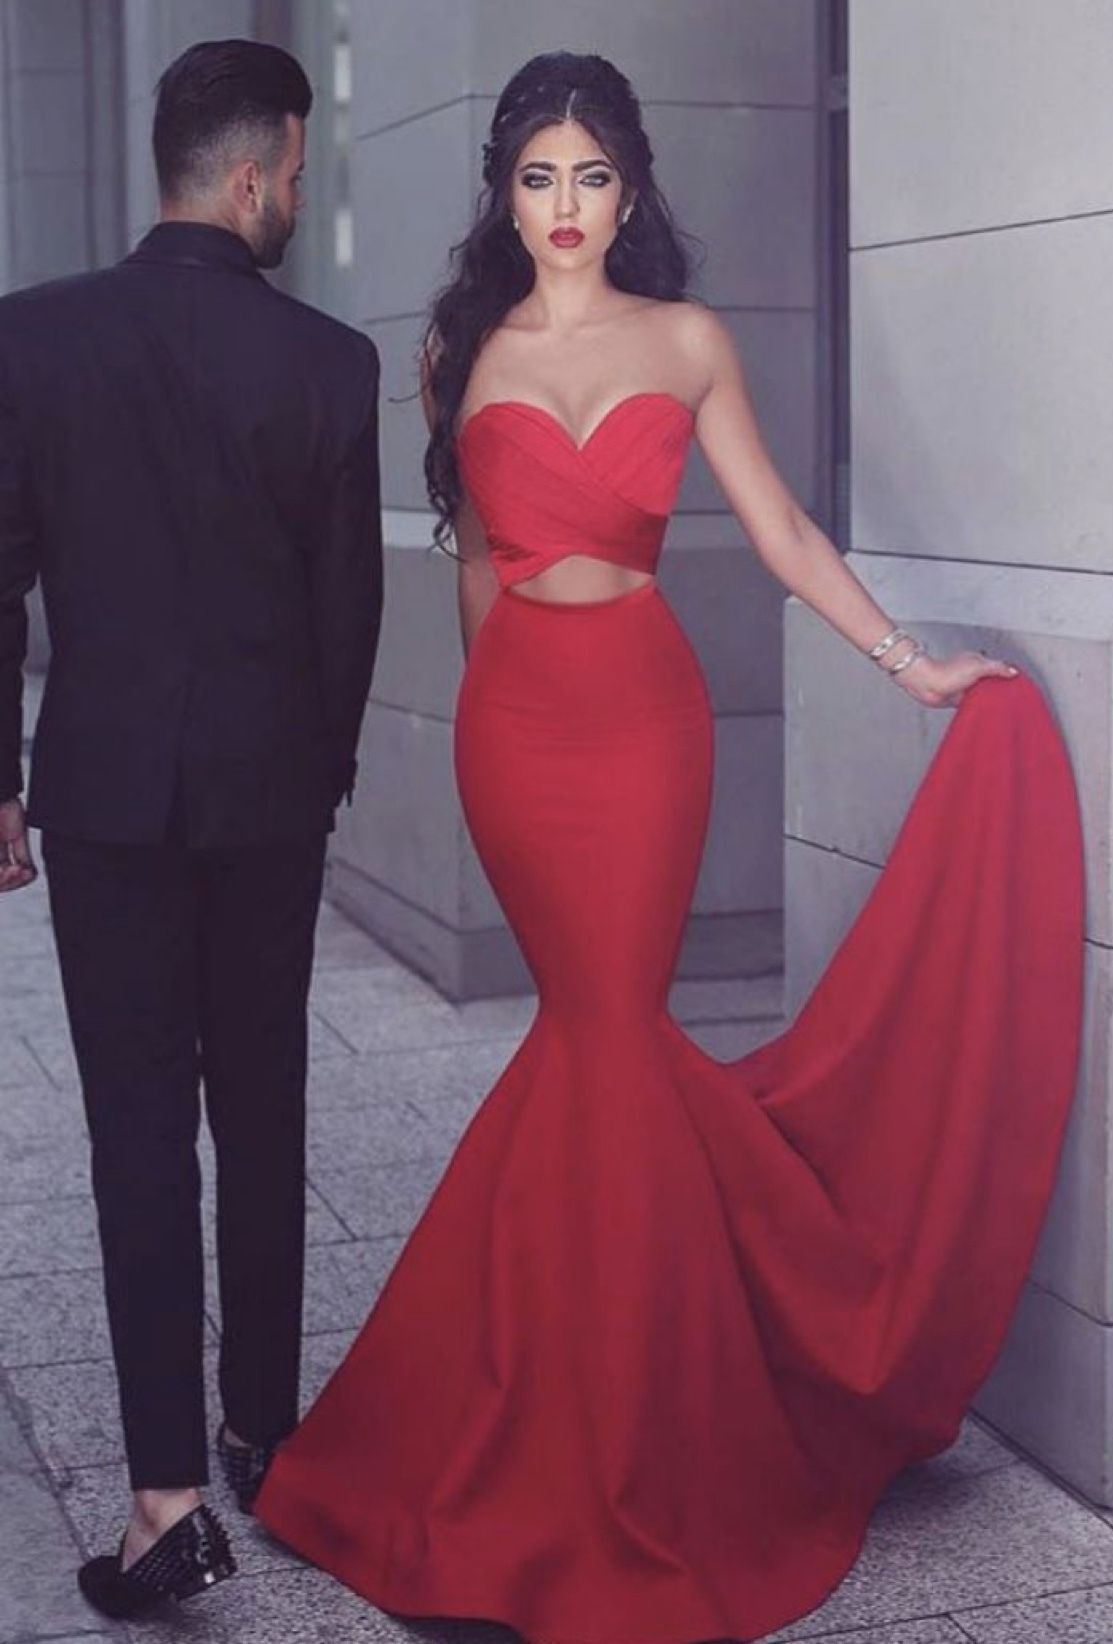 Gorgeous Strapless Mermaid Red Long Prom Dress Evening Dress 2019 G1820 Longpromdresses Red Mermaid Prom Dress Piece Prom Dress Cheap Mermaid Prom Dresses